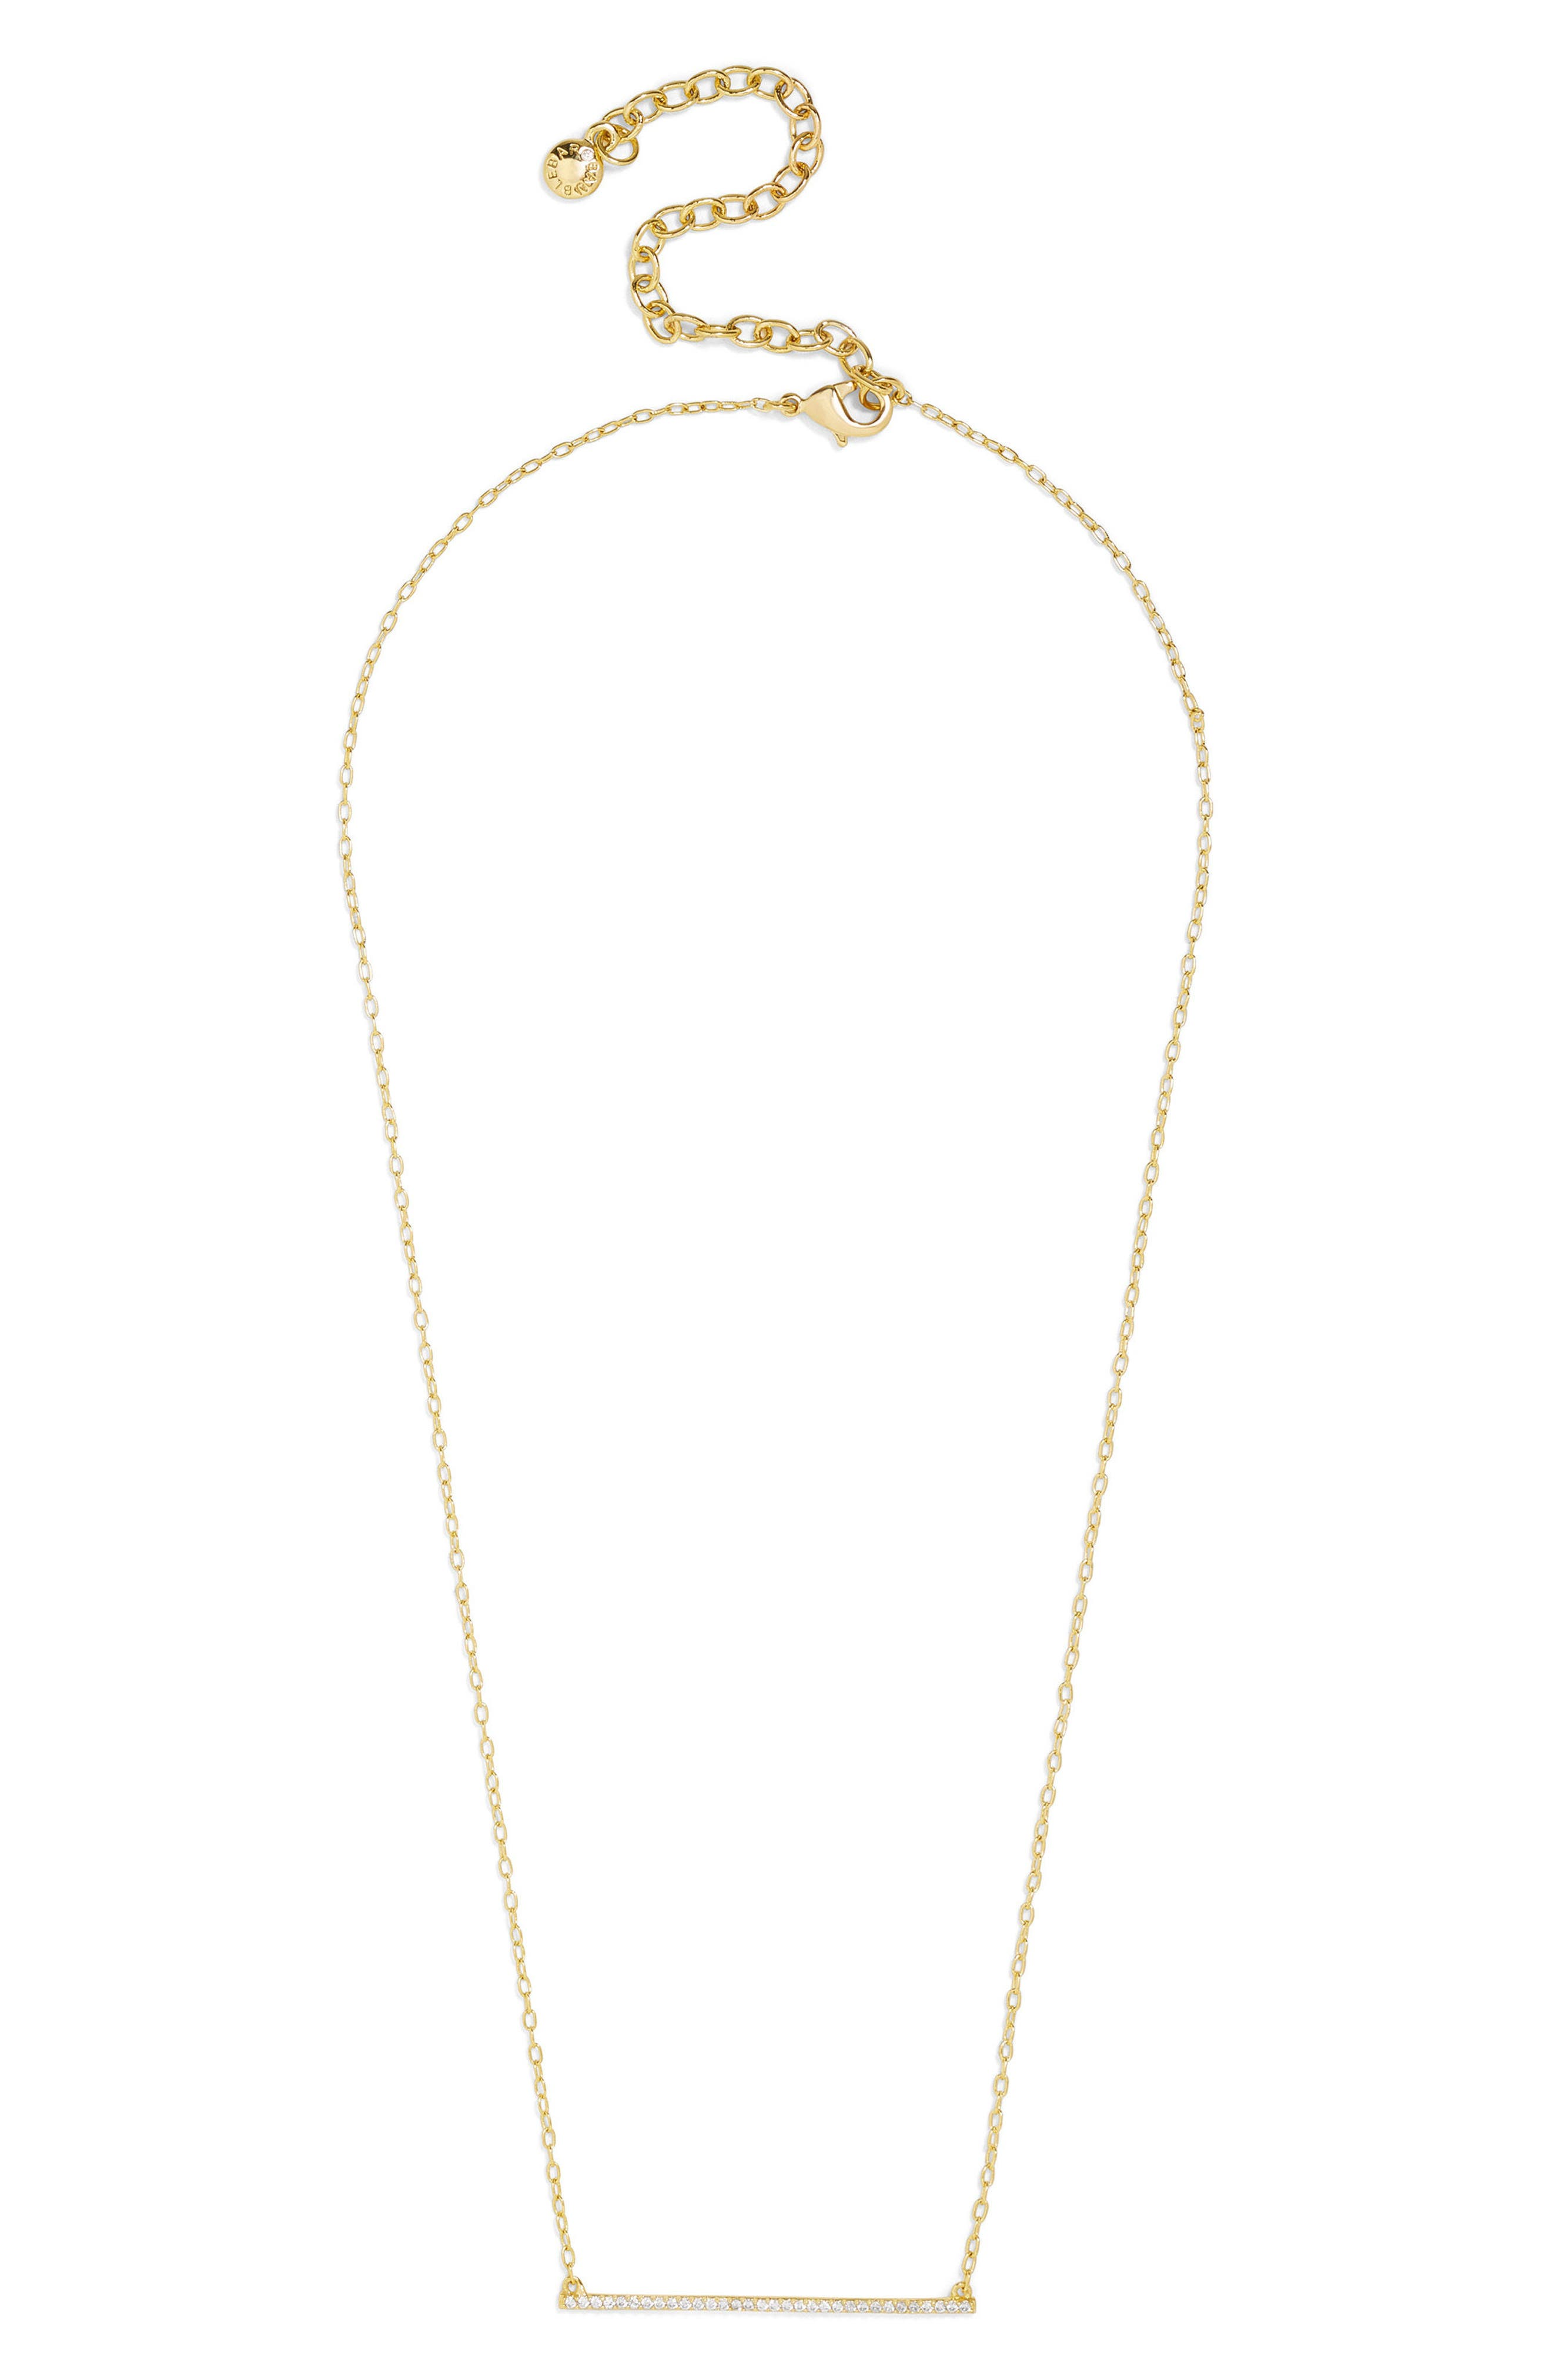 Kimberly Necklace,                             Main thumbnail 1, color,                             Gold